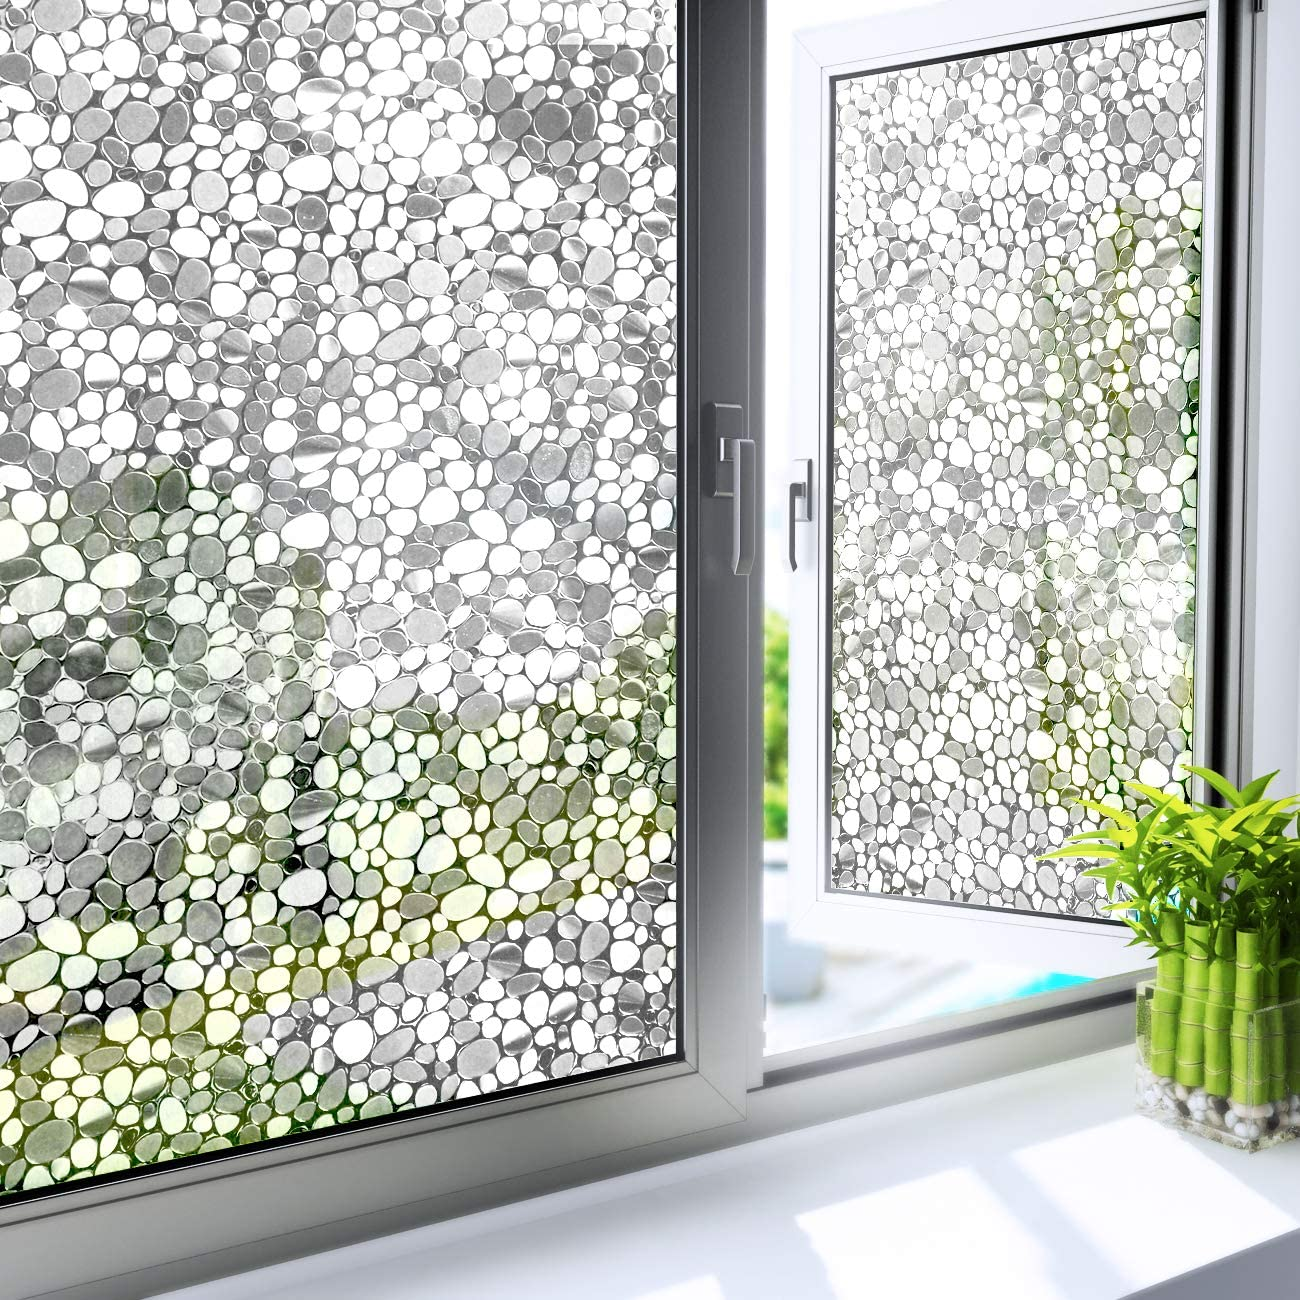 YENHOME Static Window Cling Frosted Glass Film Window Sticker Privacy Window Film No Glue Decorative Window Decals for Home Living Room Door Window Coverings Anti UV Heat Blocking 17.7